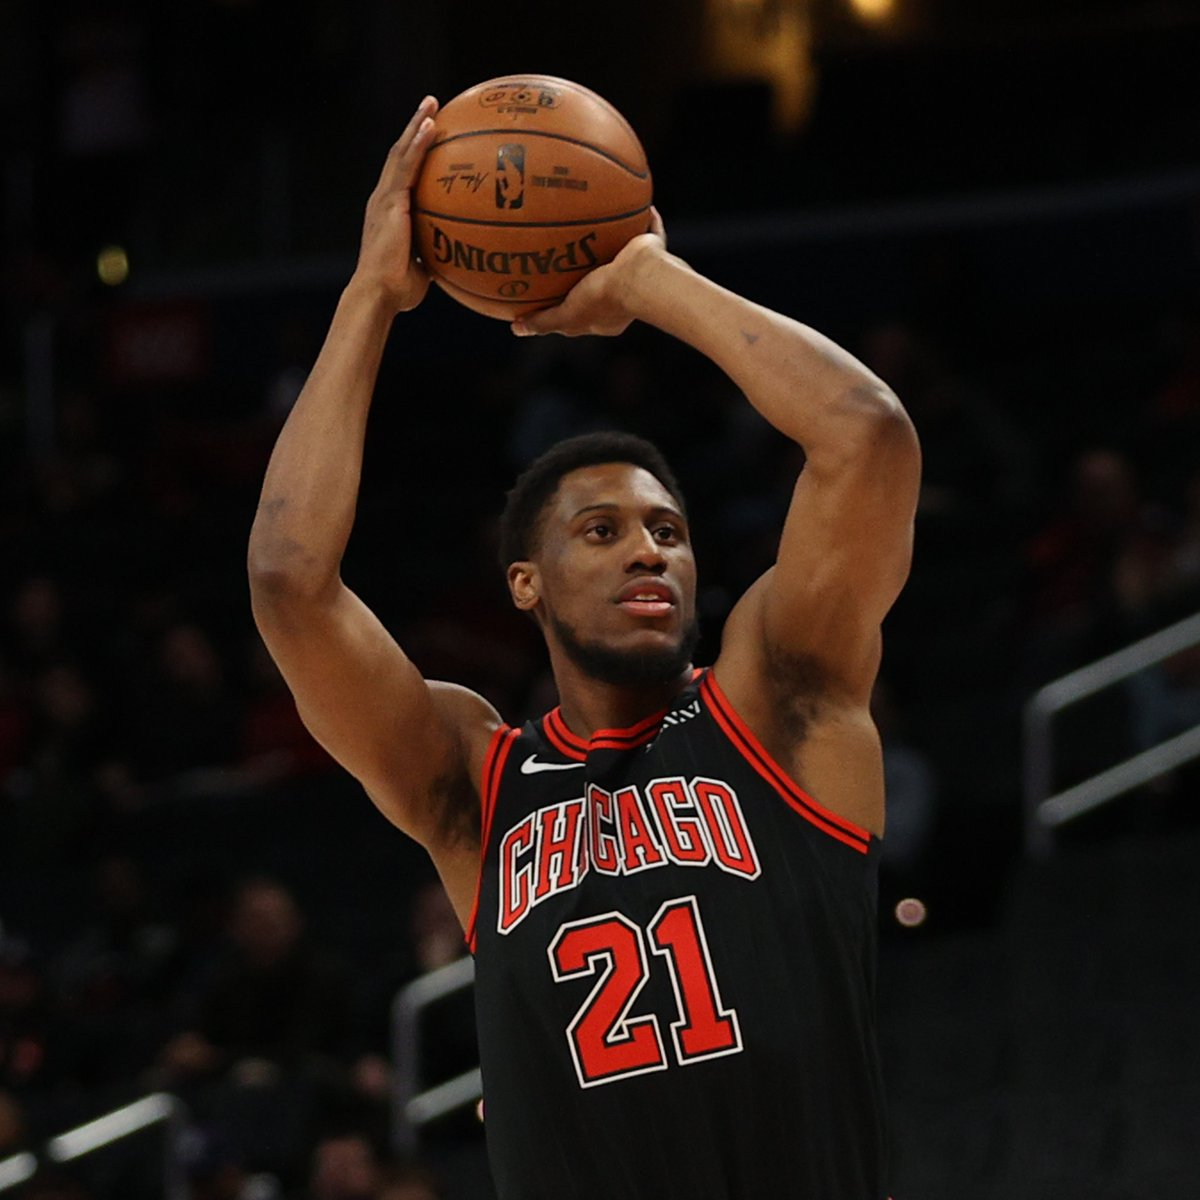 8 PTS, 4 REB, 2 BLK, 4 STL, 32.8 FPTS  Thaddeus Young is doing it all for the Bulls in the 1st half!